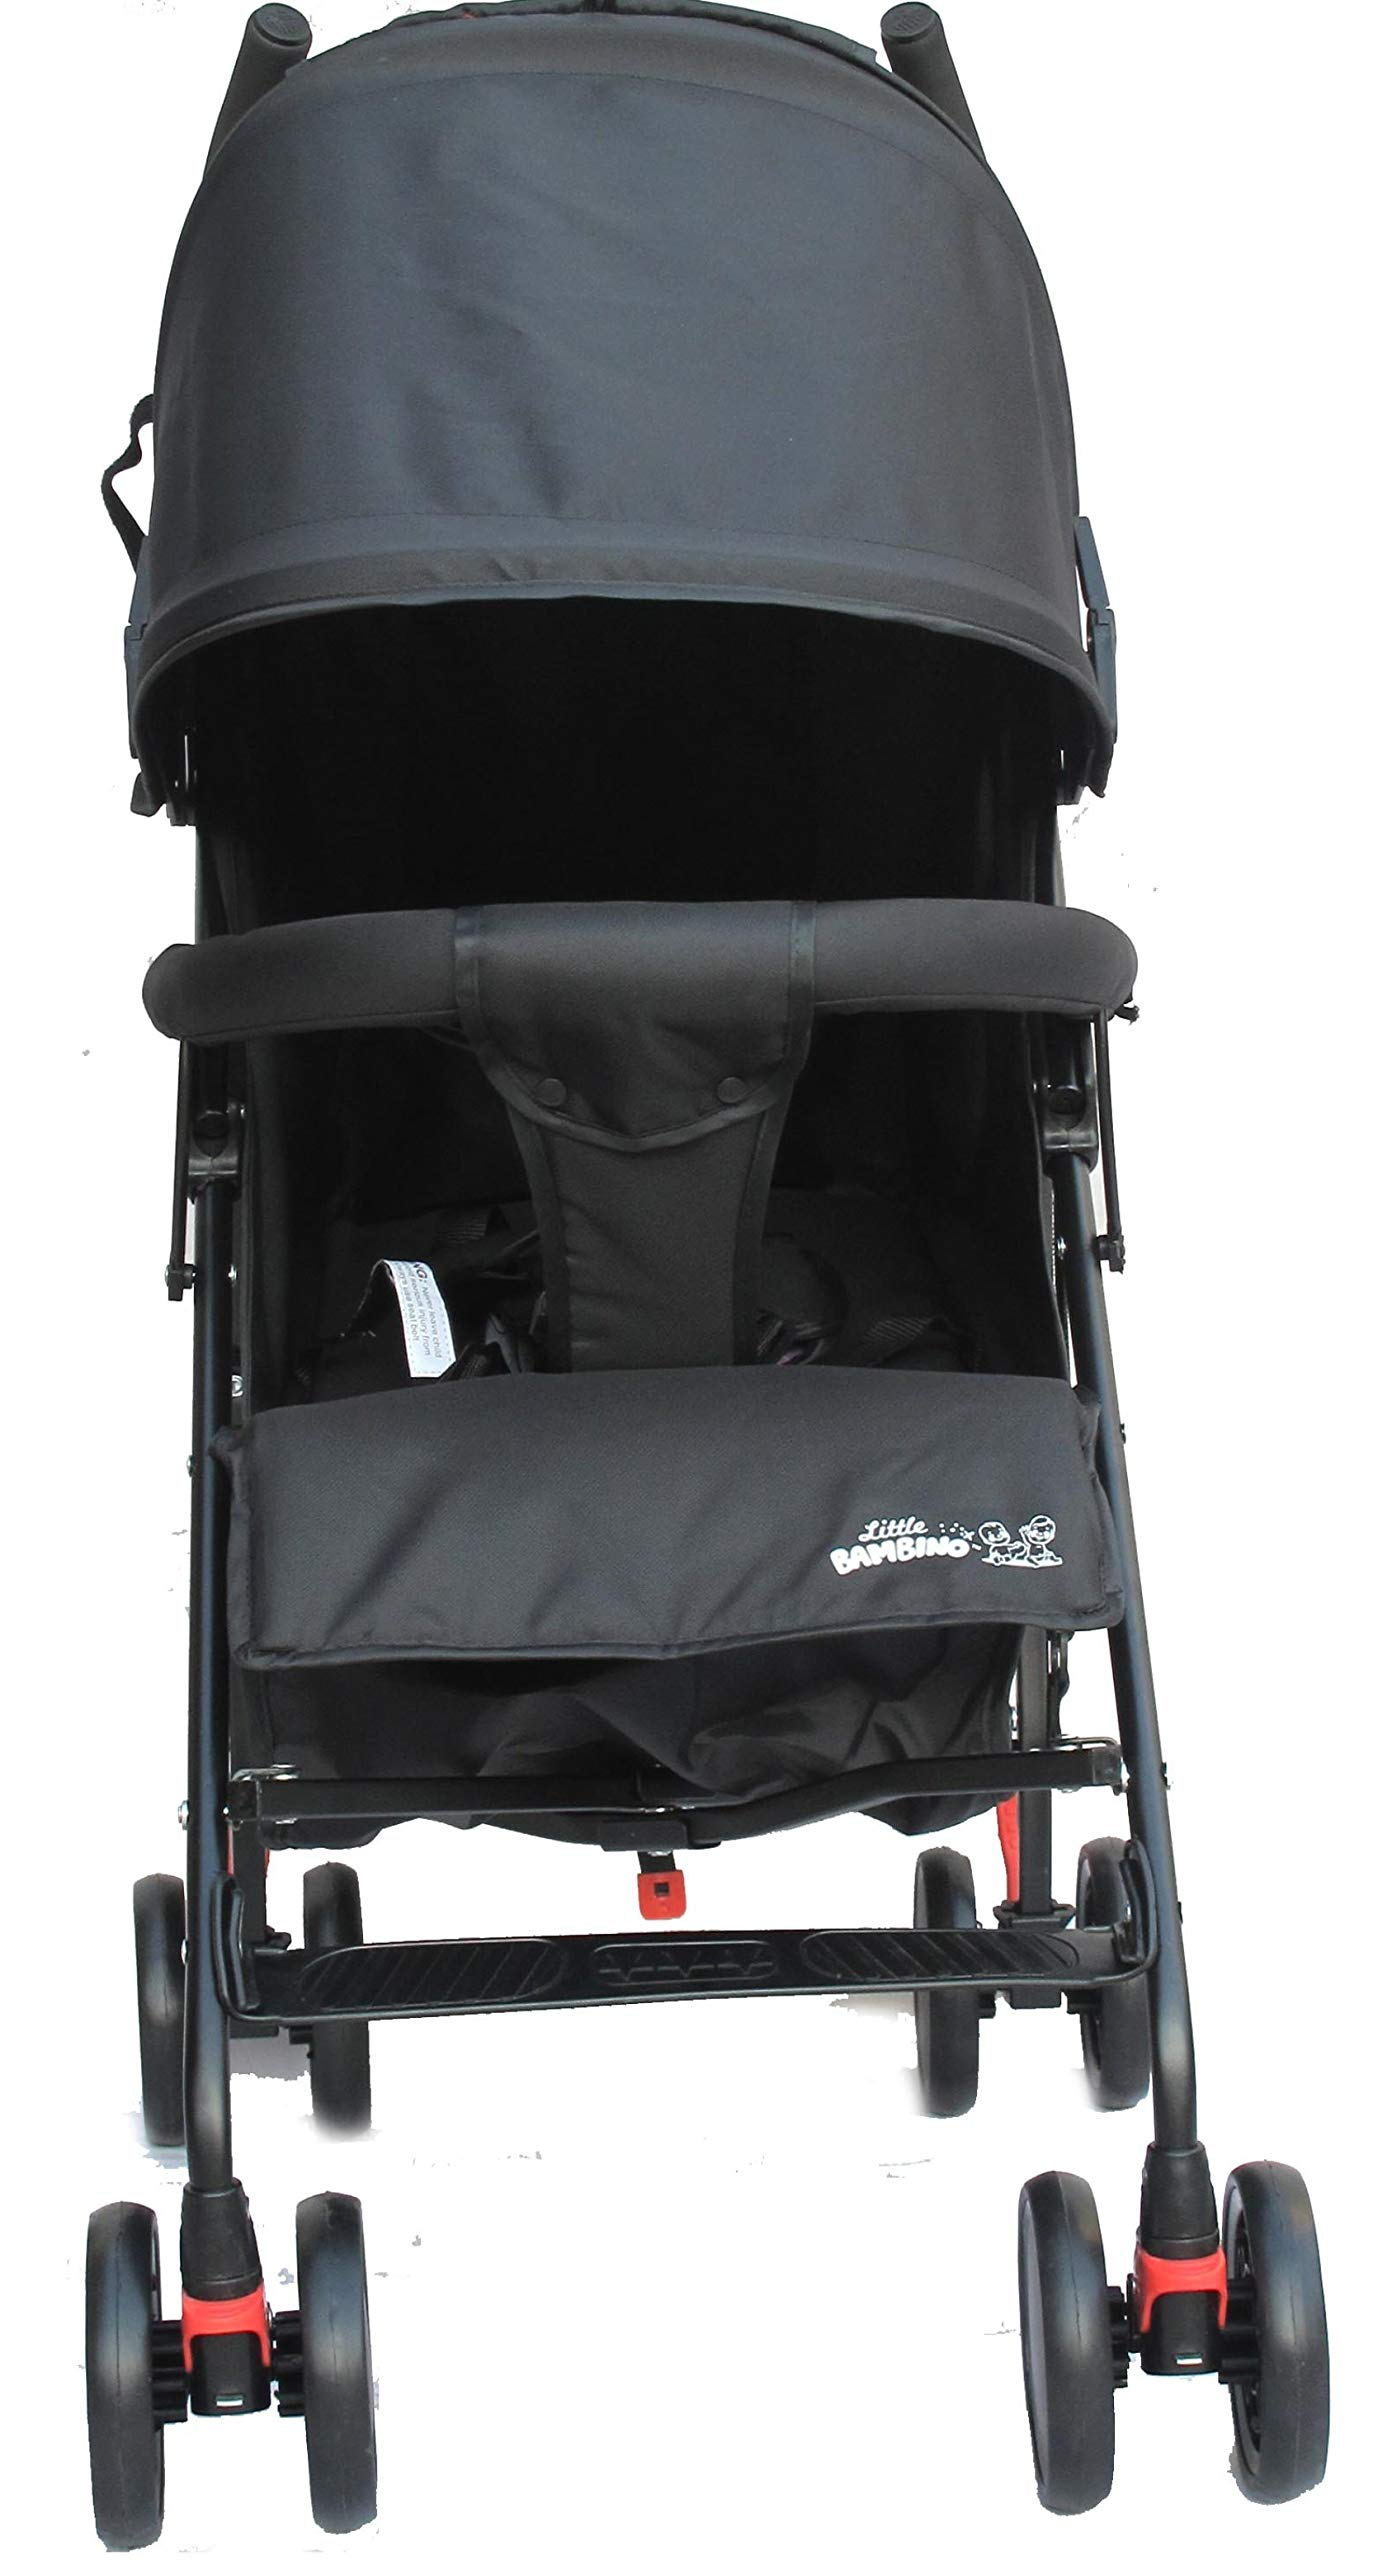 Stroller for Kids Lightweight Buggy Easy Fold Travel Stroller Buggy Foldable for Airplane Travel Cabin Size(Black) Little Bambino ✨Extendable upf 50+ sun canopy and built-in sun visor ✨EASY USAGE - One-hand foldable buggy makes taking your baby for travels or walks a simple pleasure. It could stand on its own so you could take care of your baby with less things to worry about. ✨ADJUSTABLE BACKREST - Travel stroller backrest can be adjusted. Suitable for children from 0 to 36 months 2